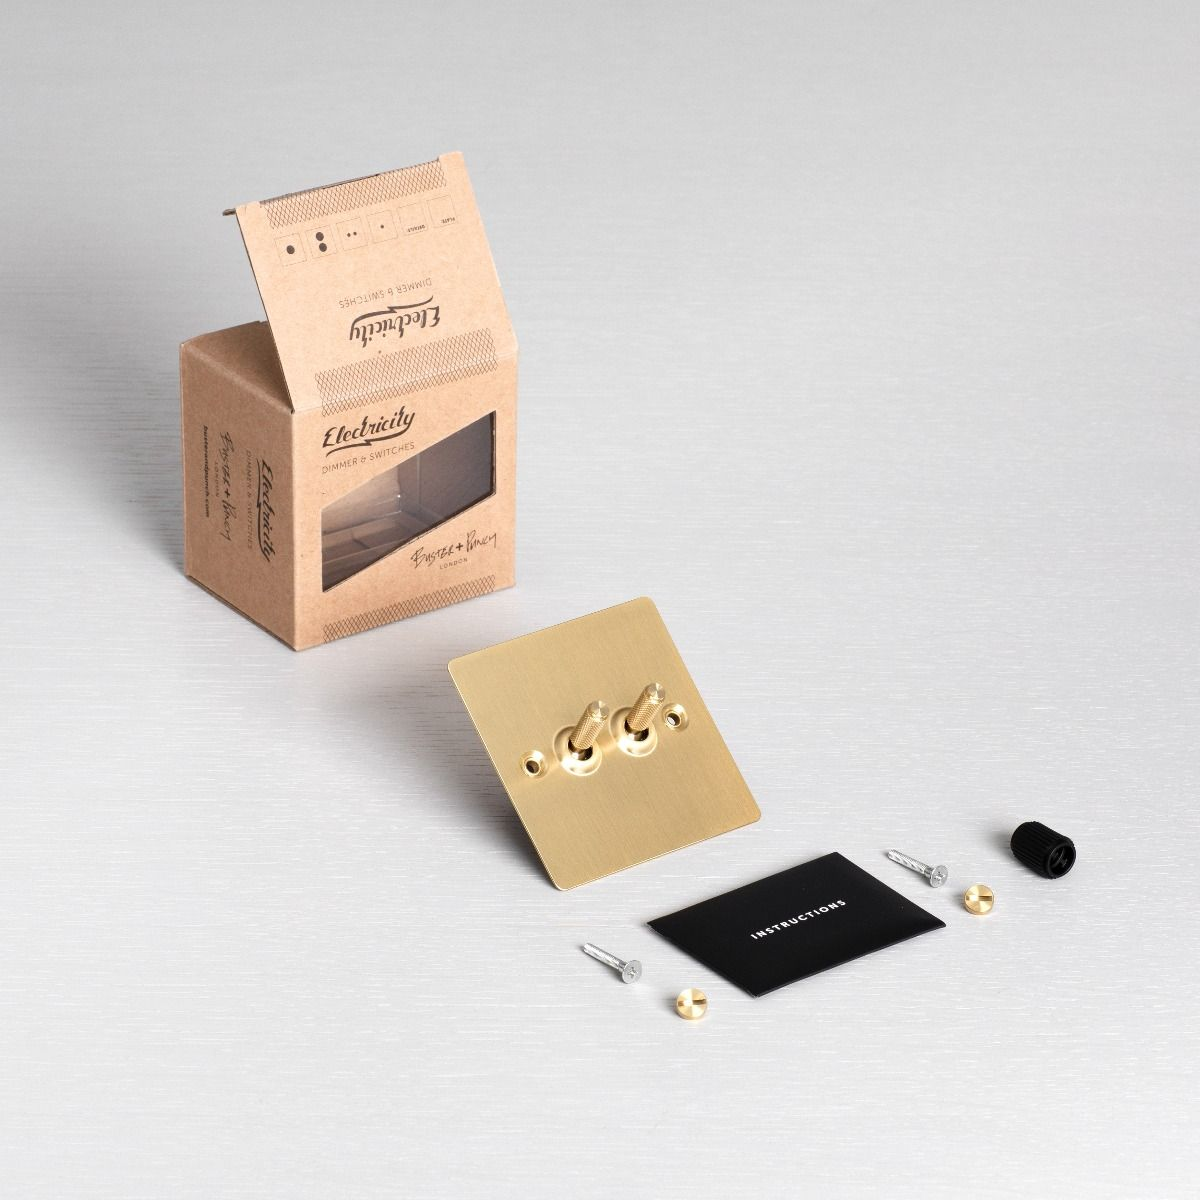 Buster + Punch Toggle Switch 2G